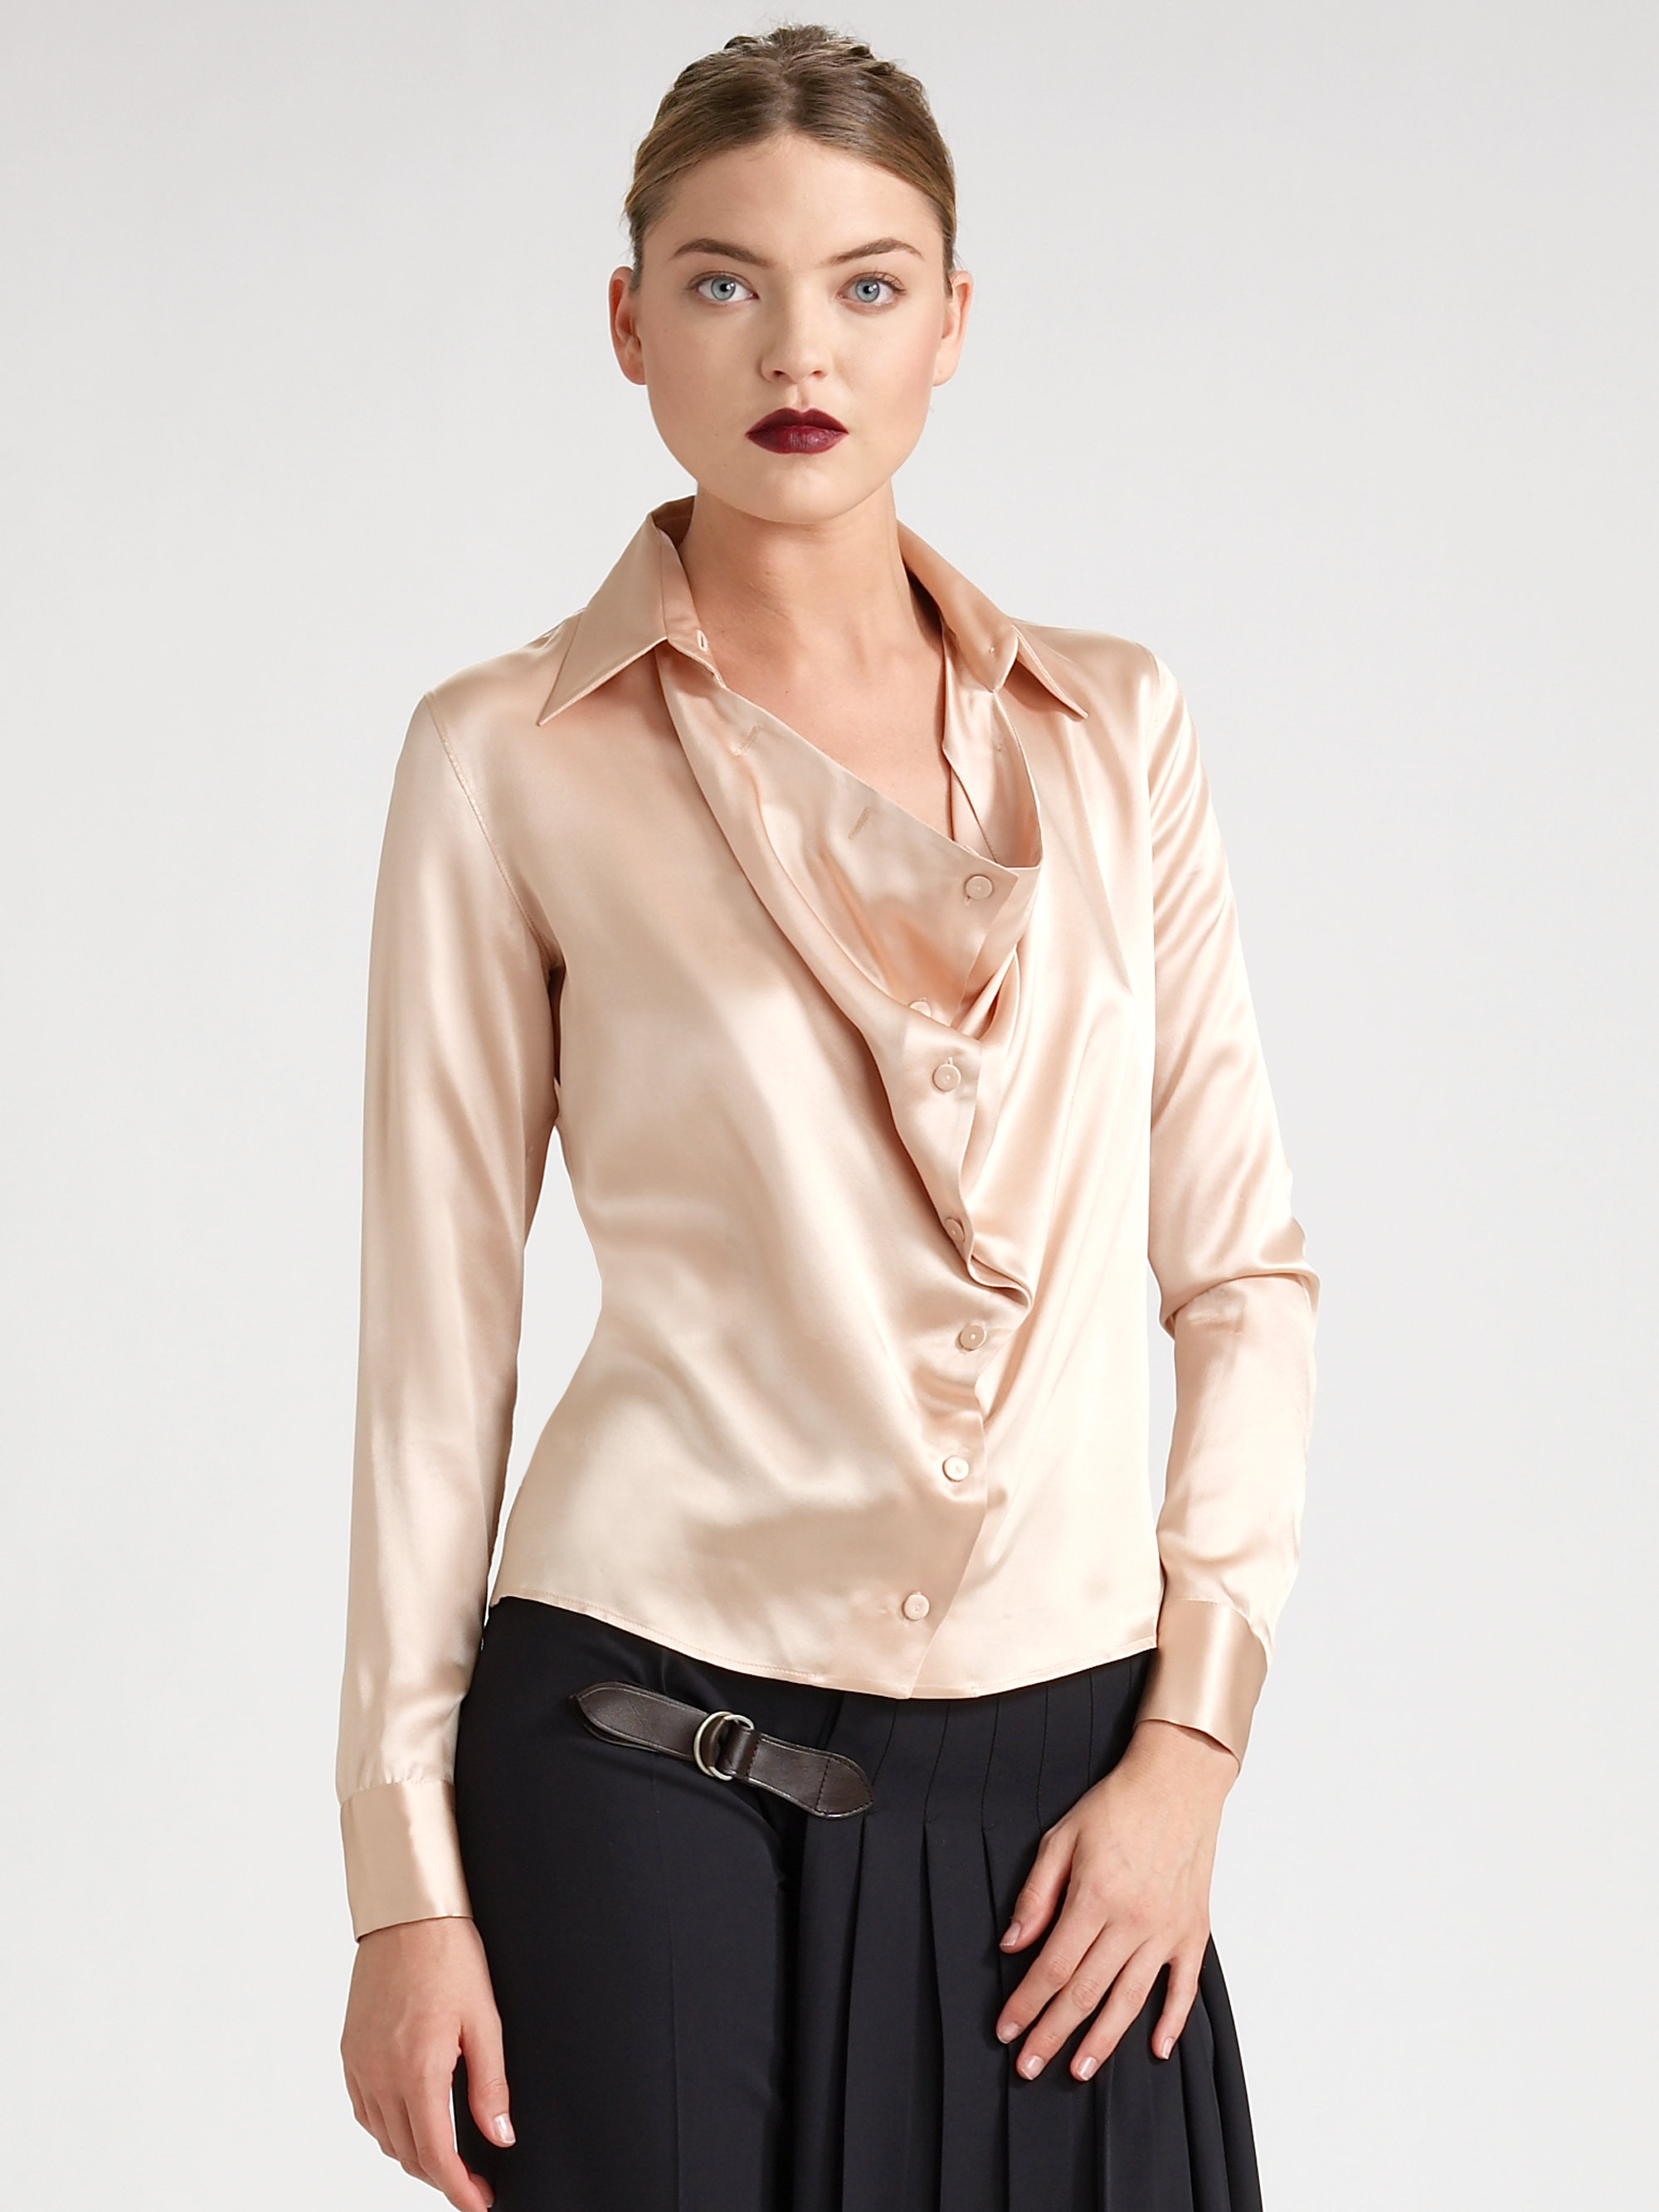 The Finest Silk Blouse Outfits